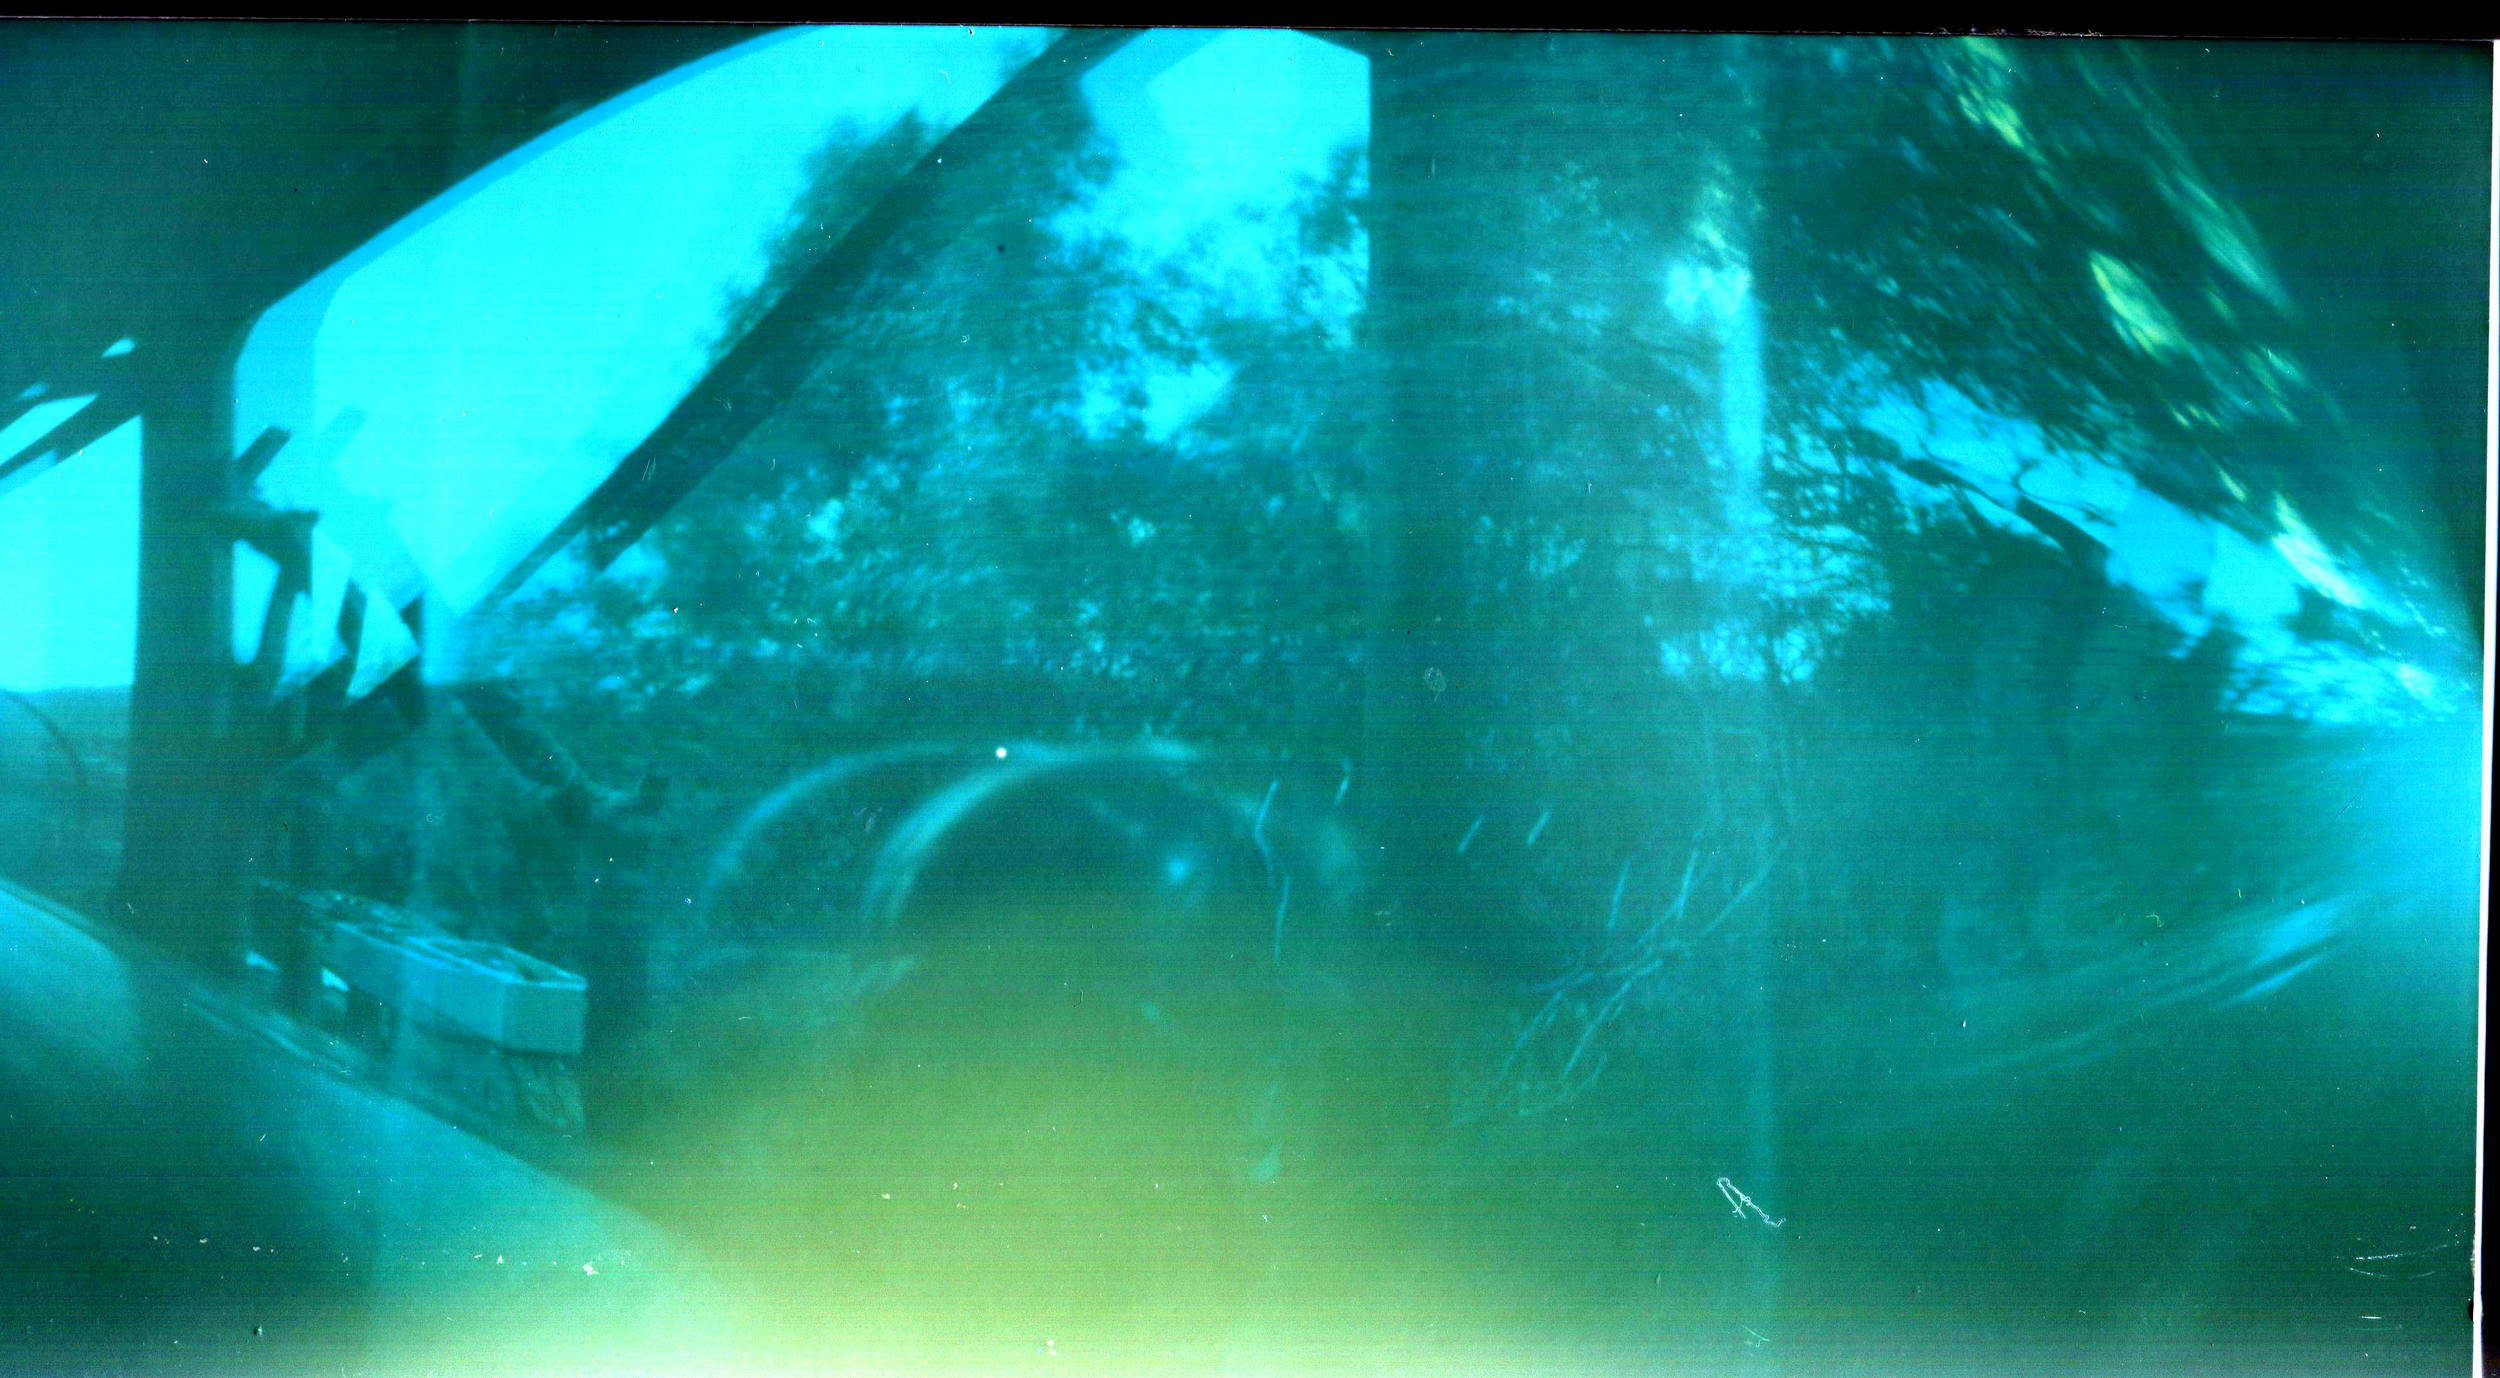 Solargraphy1.jpg